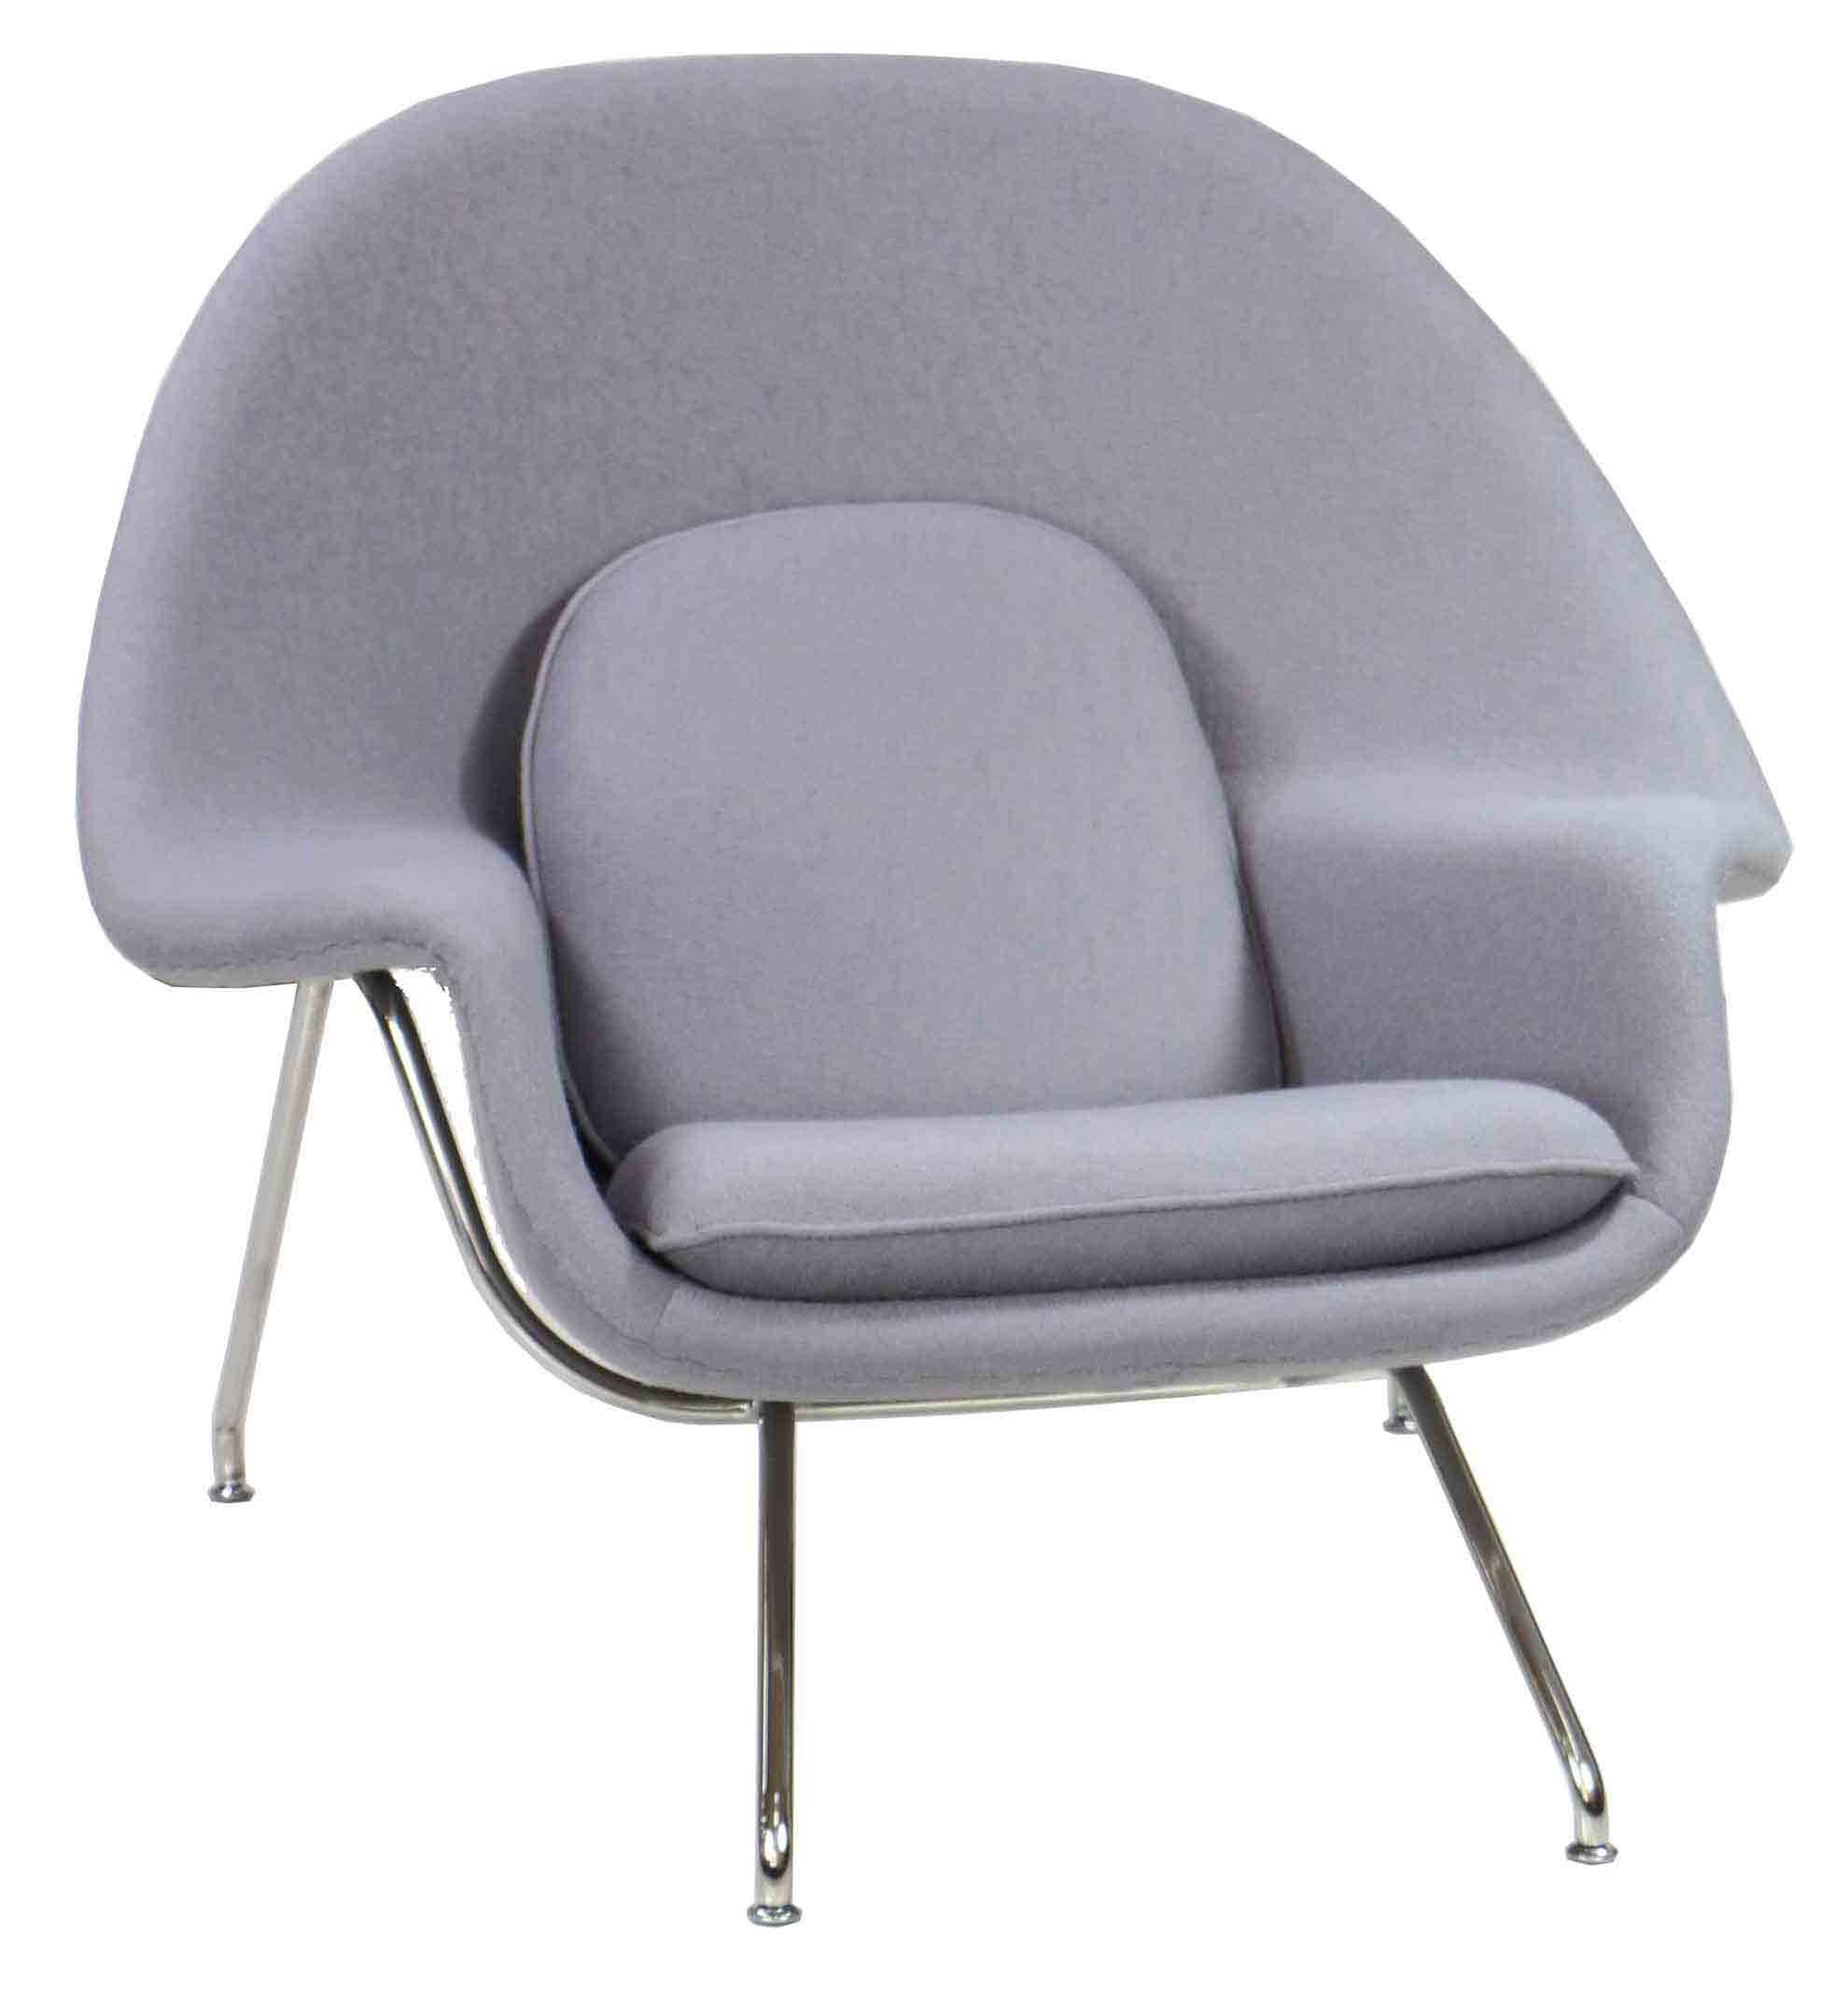 Designer Replica Womb Chair In Light Grey | Furniture U0026 Home Décor |  FortyTwo